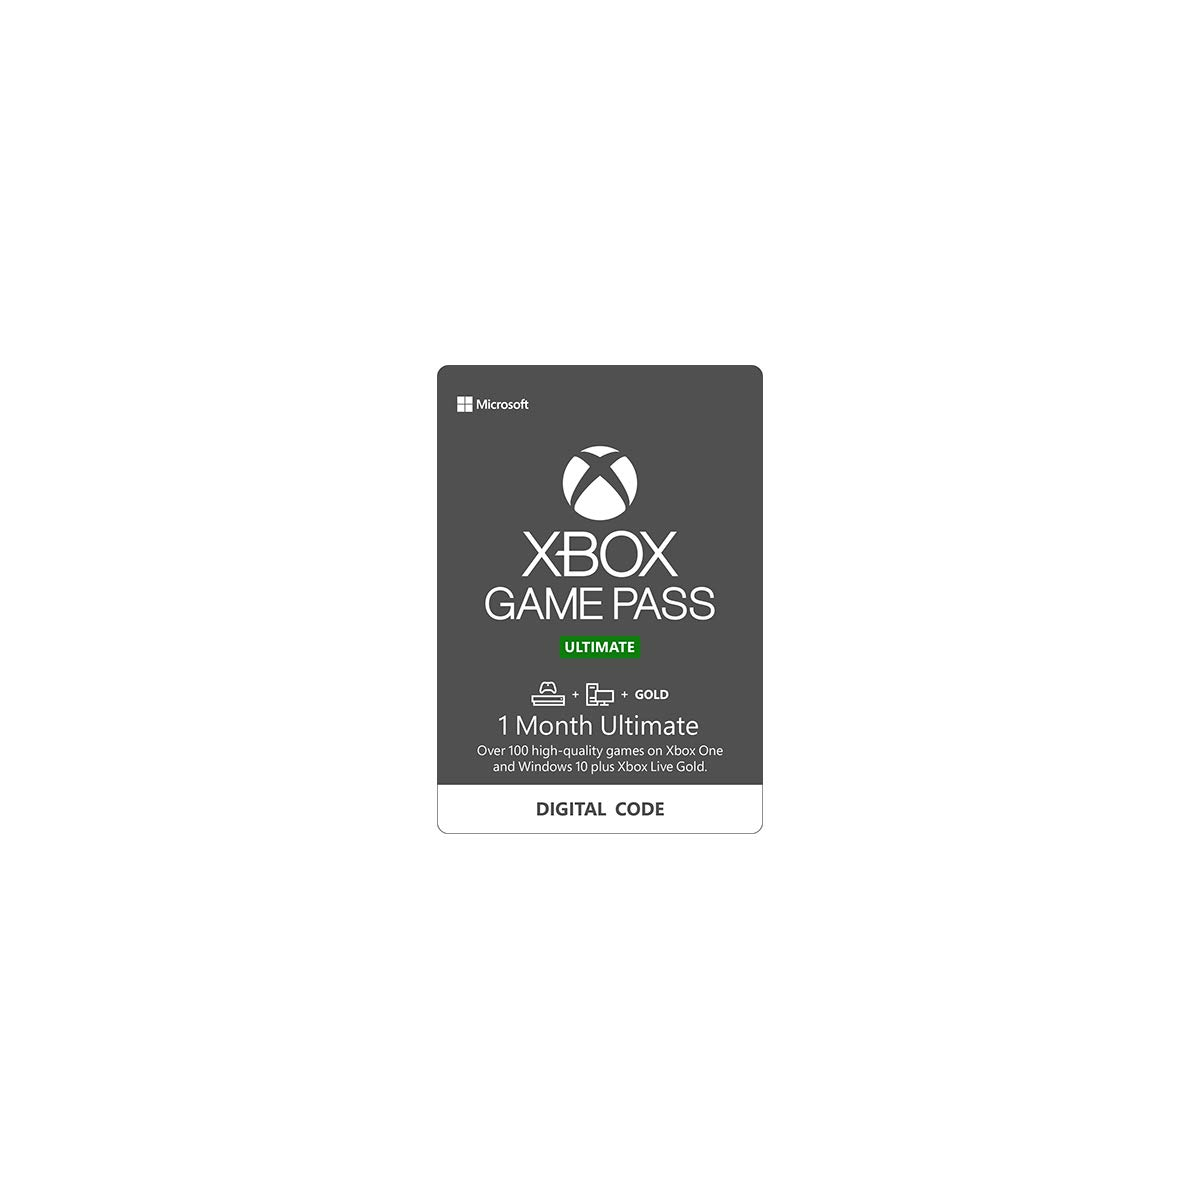 Xbox Game Pass Ultimate - 1 Month Membership - Xbox One [Digital Code] by Microsoft